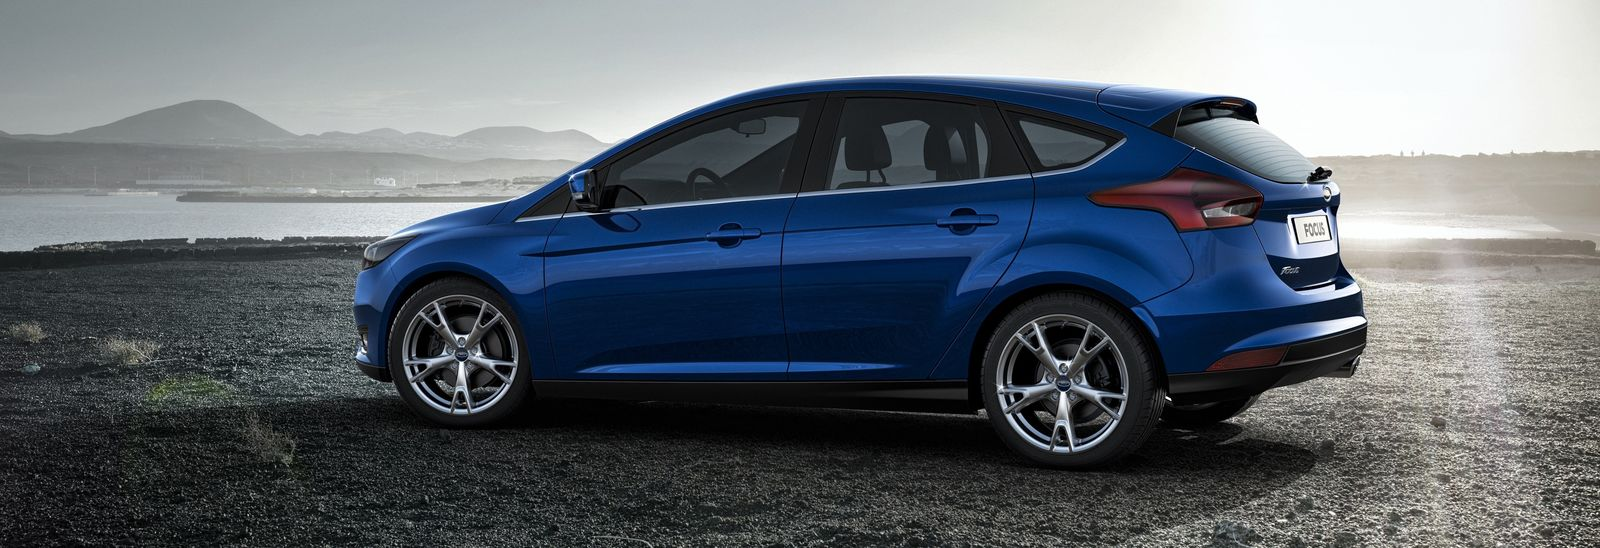 Ford Focus Options Which Should You Buy Carwow